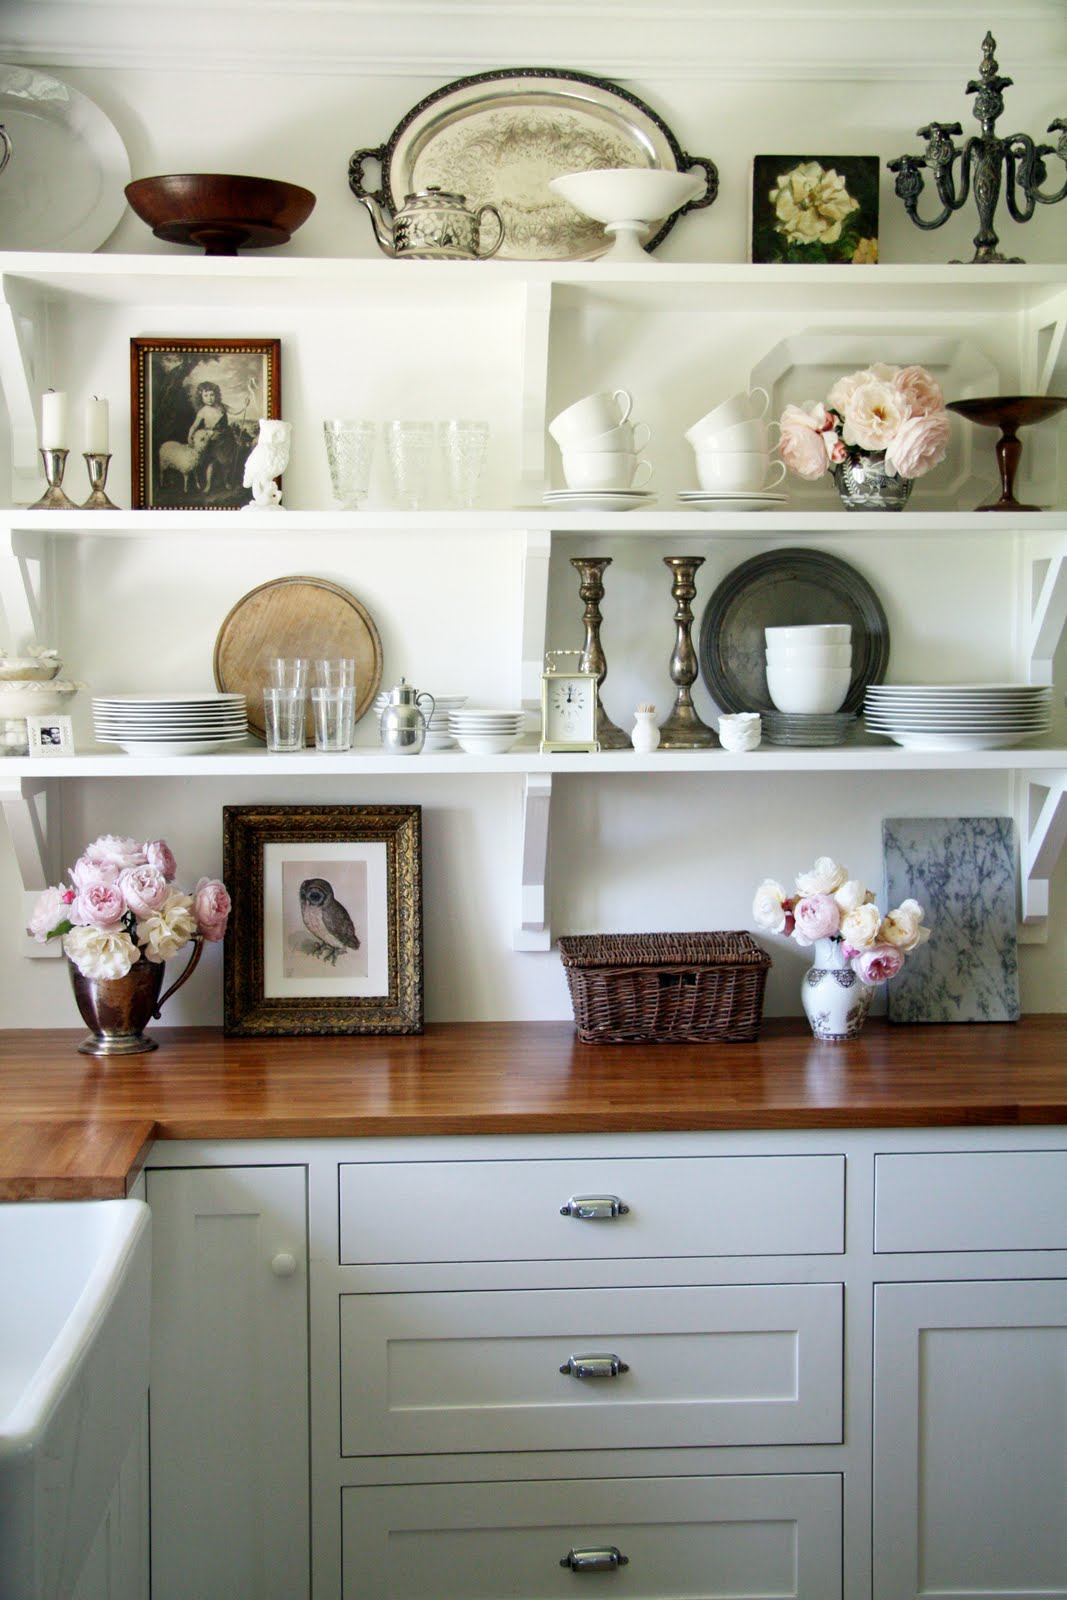 Kitchen planning and design open shelves in your kitchen Open shelving